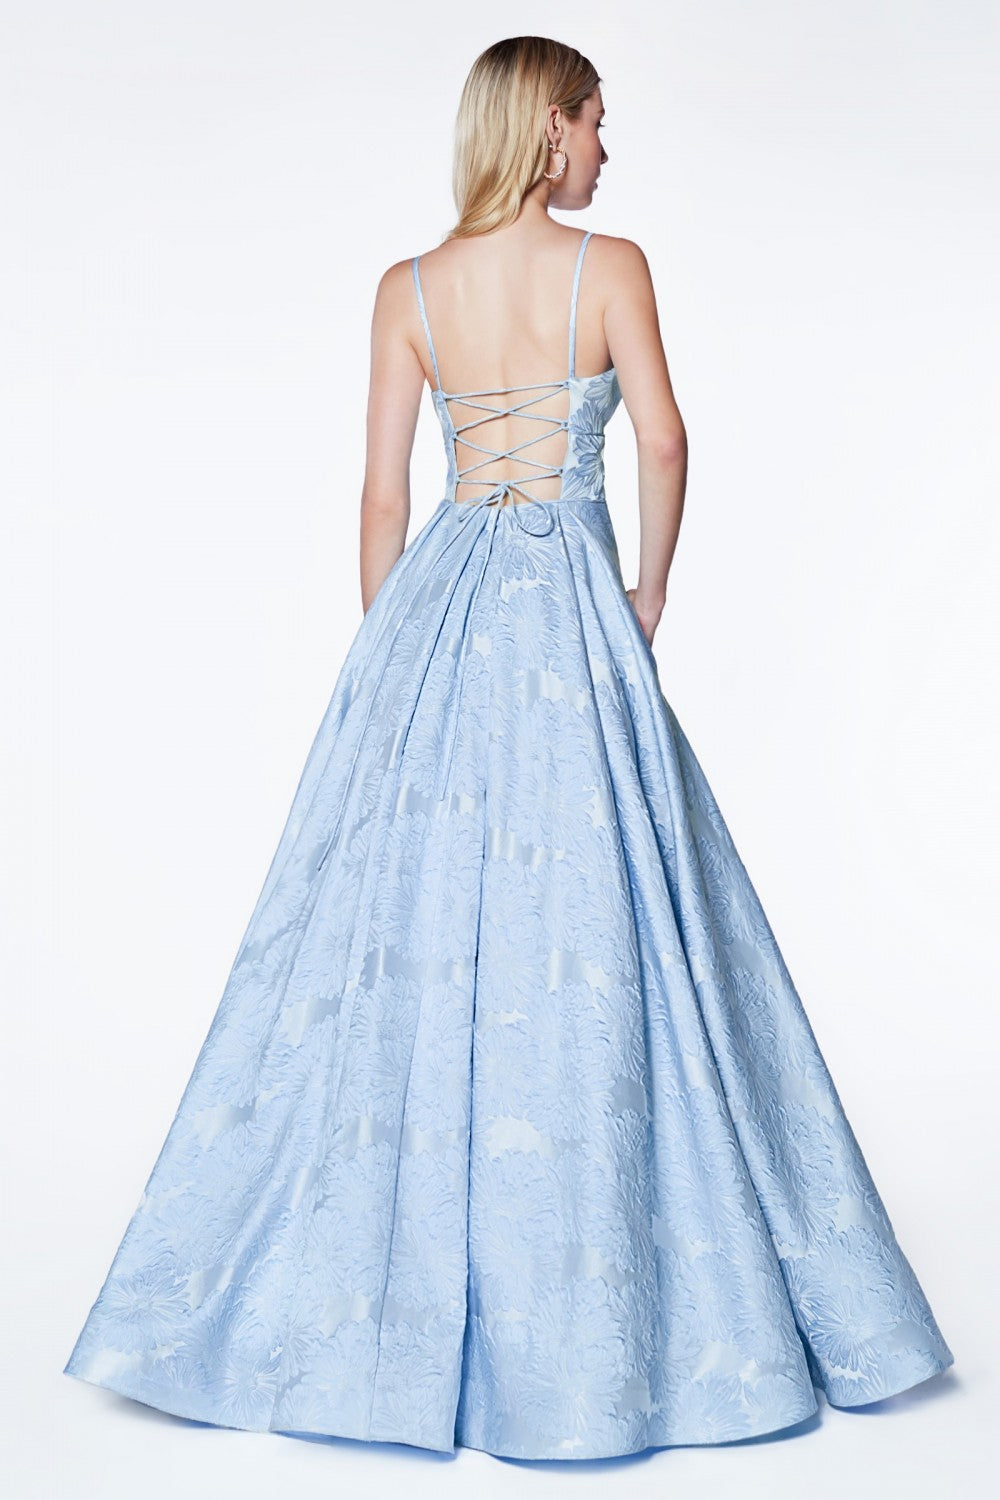 Floral Print Ball Gown With Deep Sweetheart Neckline And Pleated Skirt